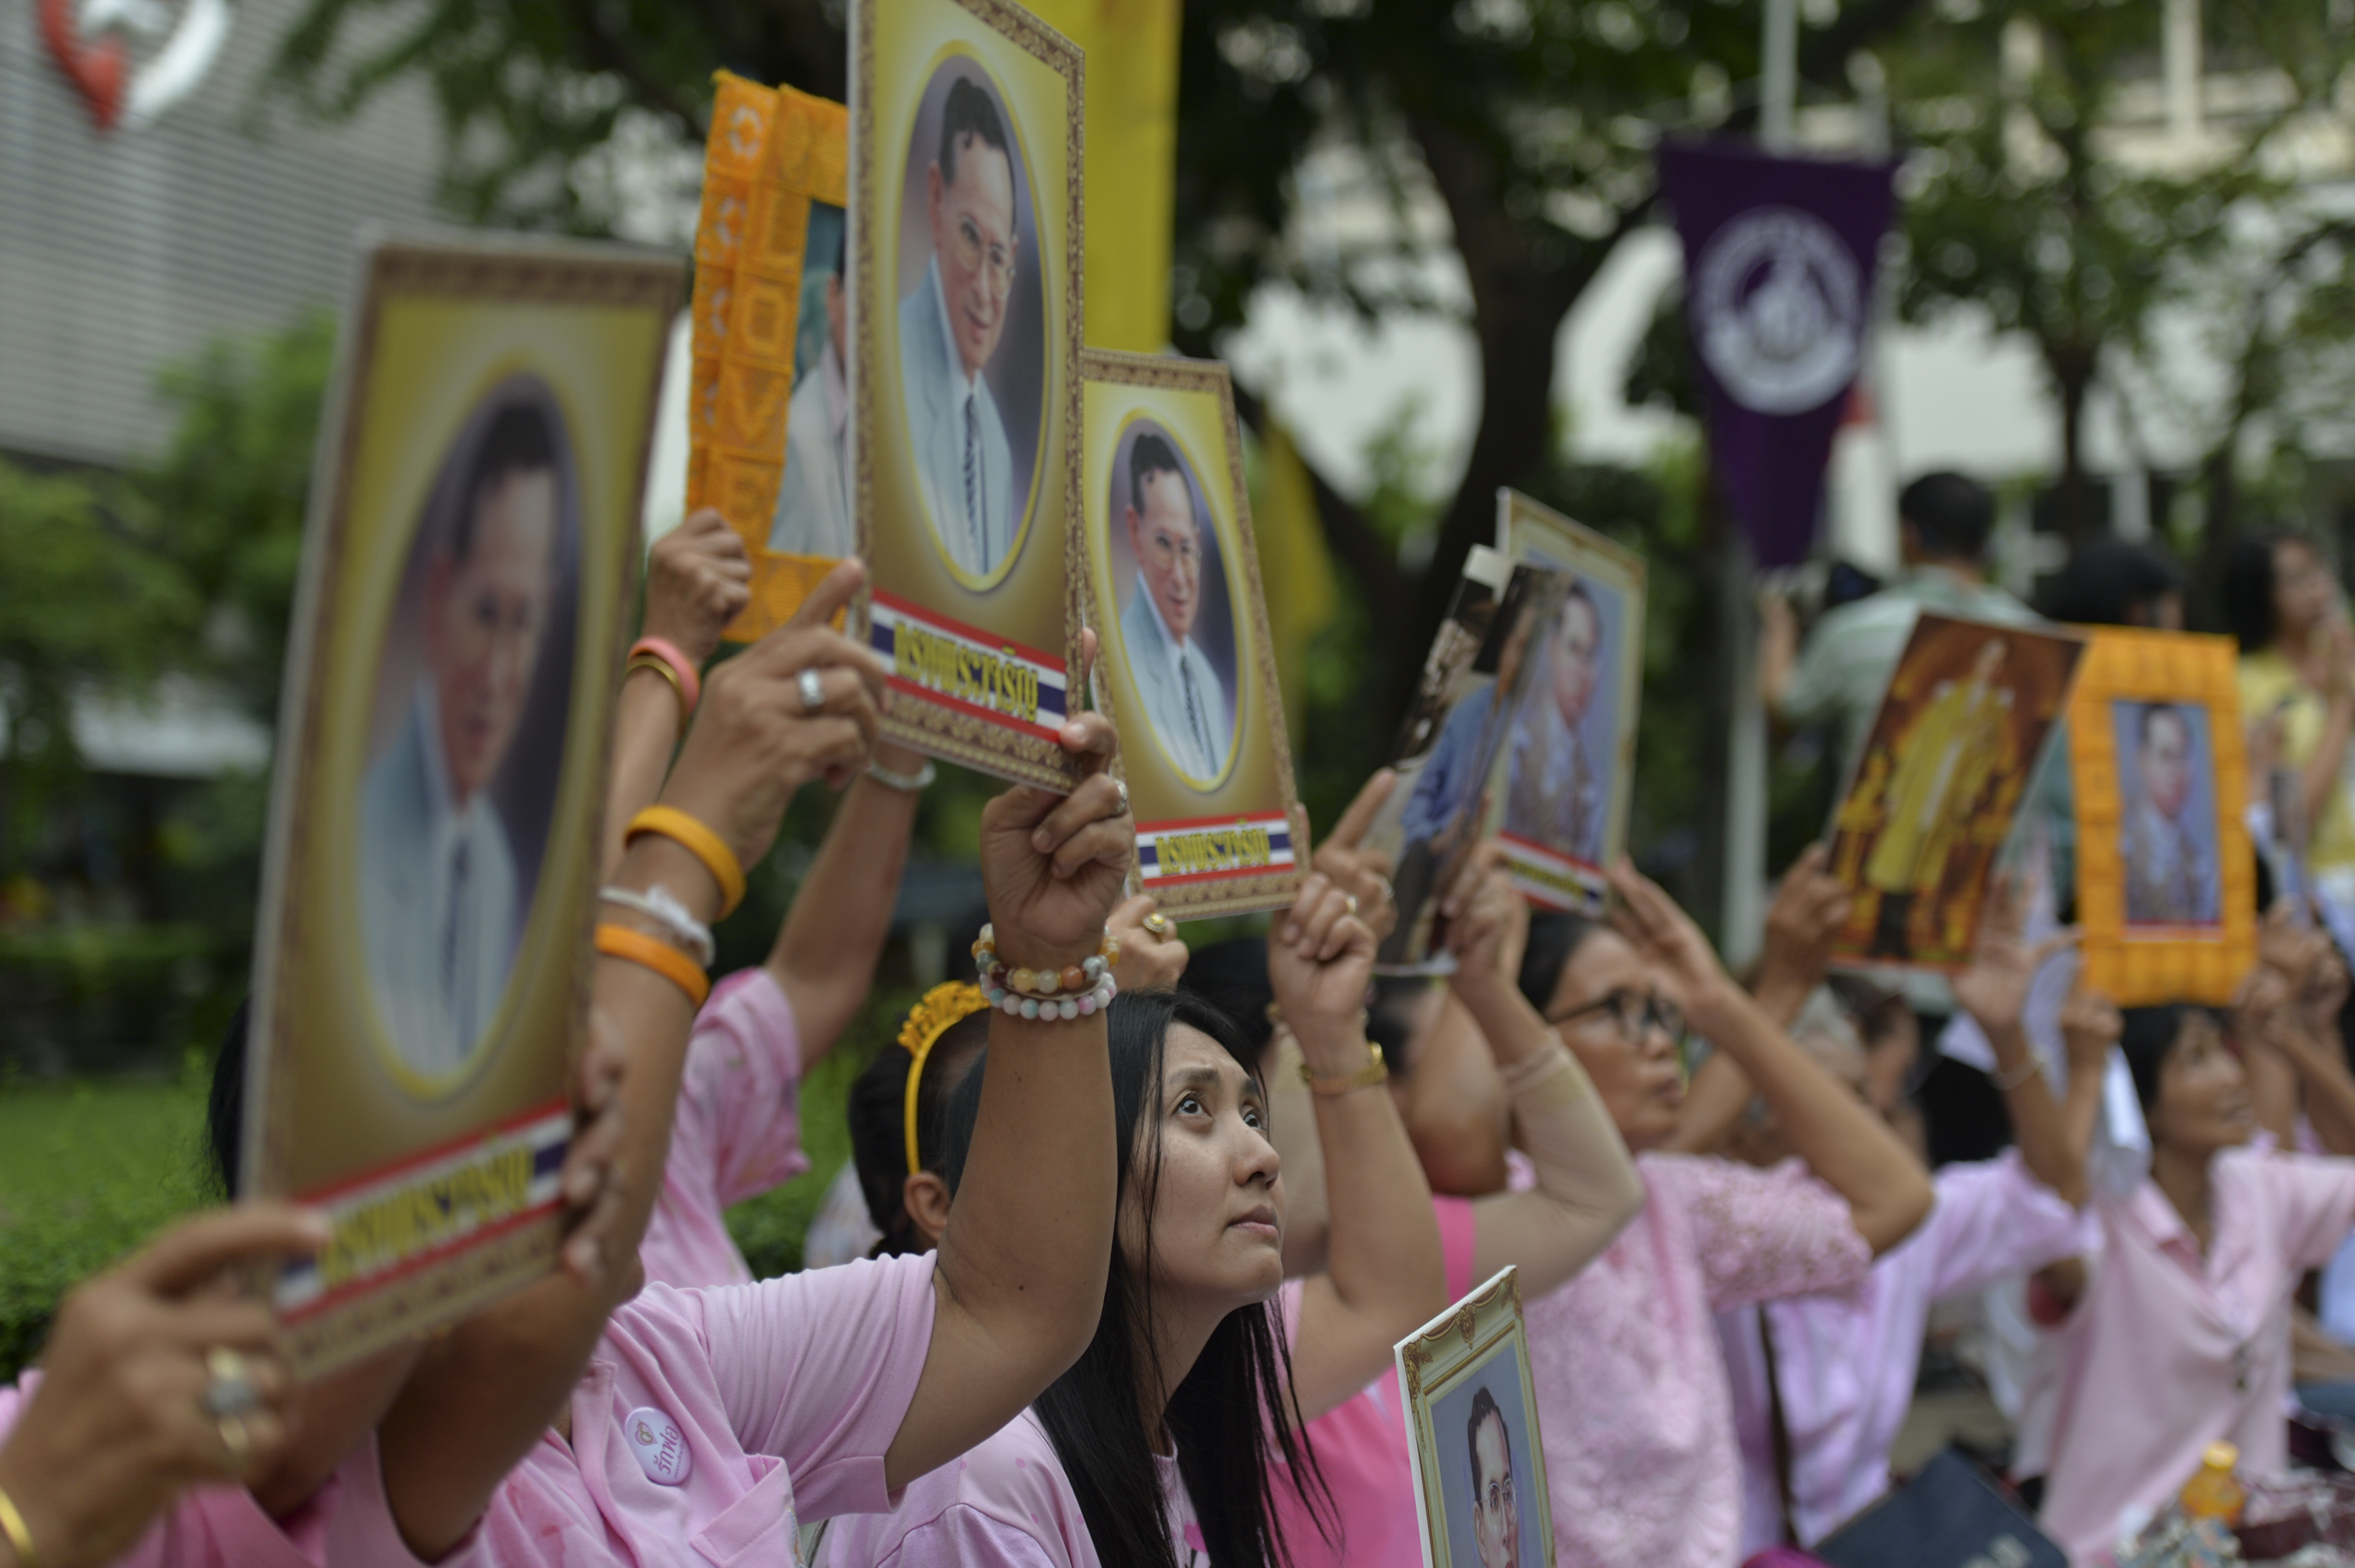 Thai women hold portraits of Thai King Bhumibol Adulyadej as they pray for his health at Siriraj Hospital, where the king is being treated, in Bangkok on Oct. 12, 2016.